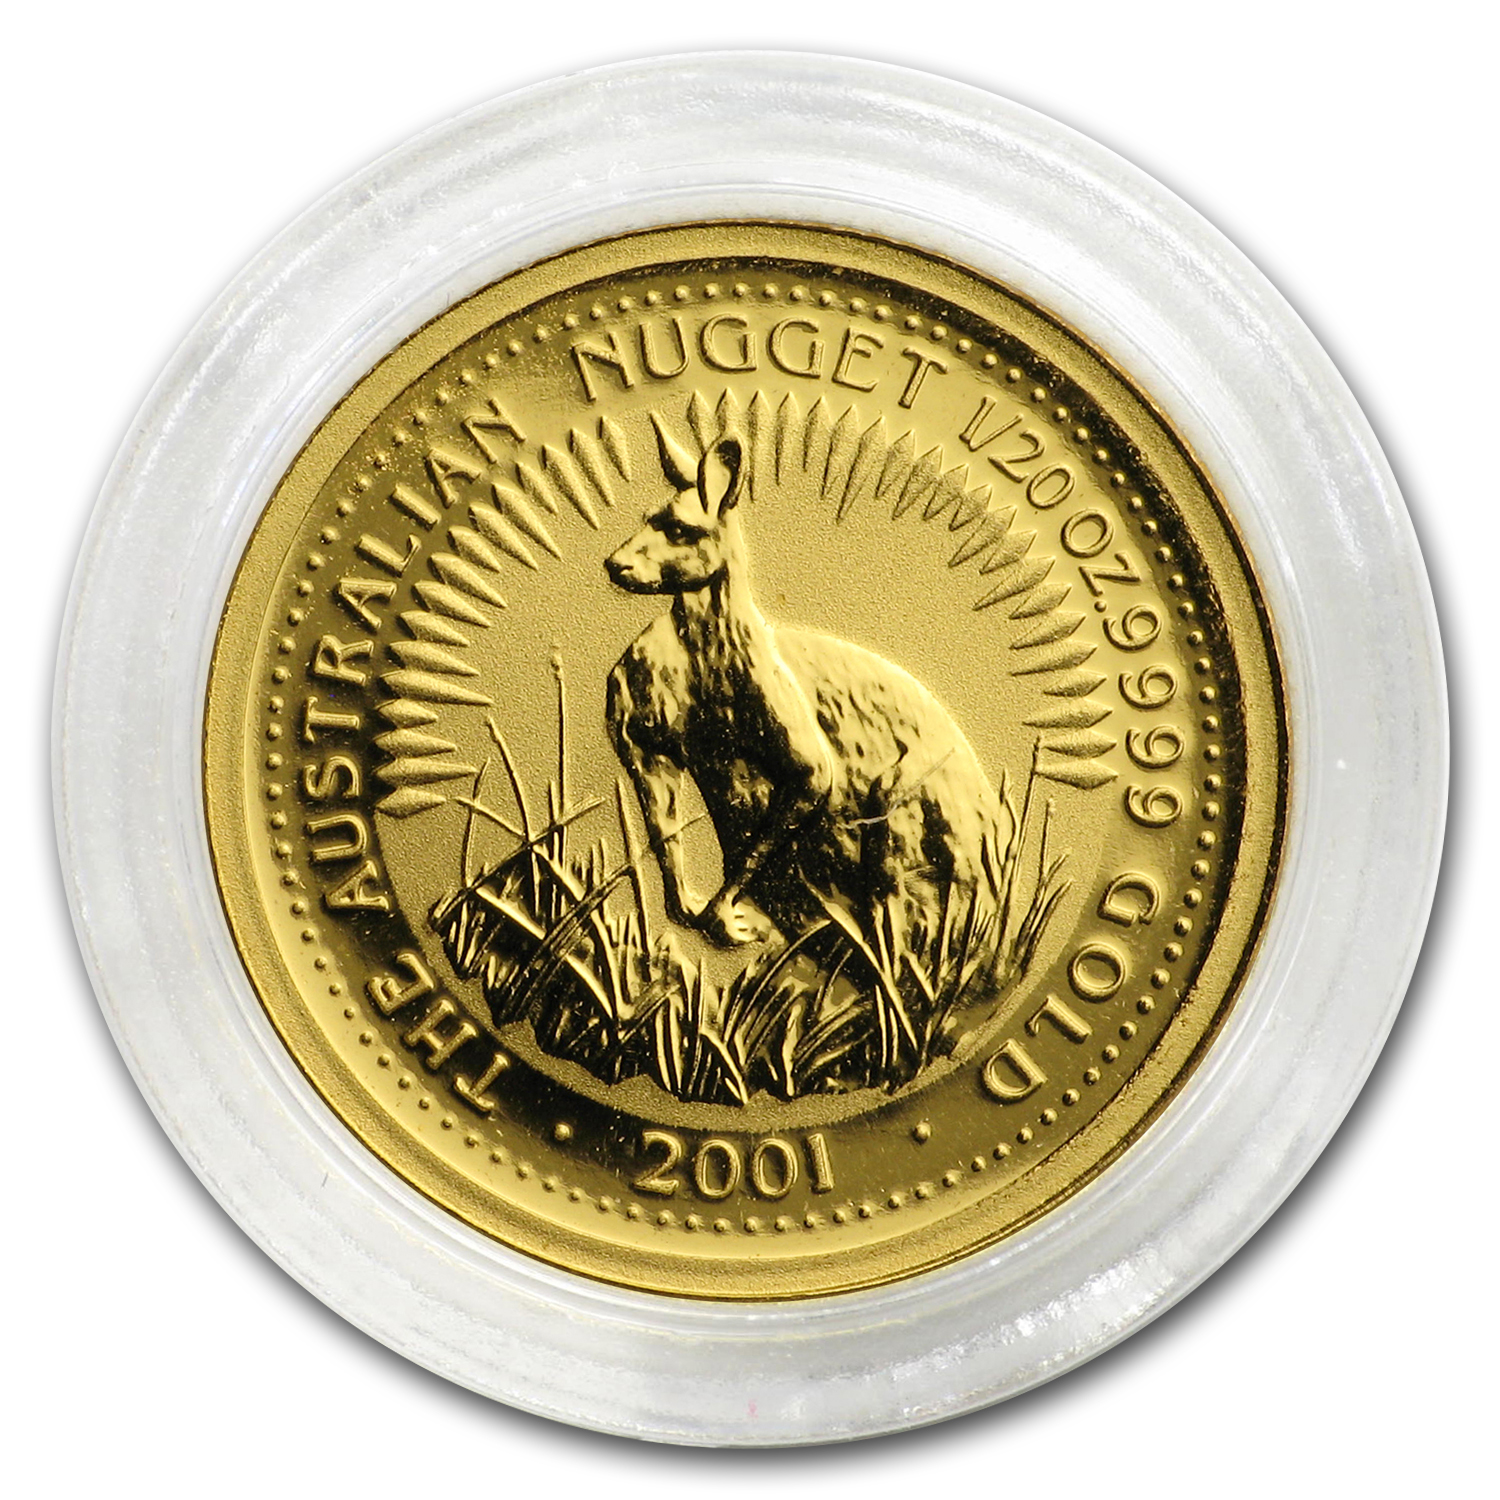 2001 Australia 1/20 oz Gold Nugget